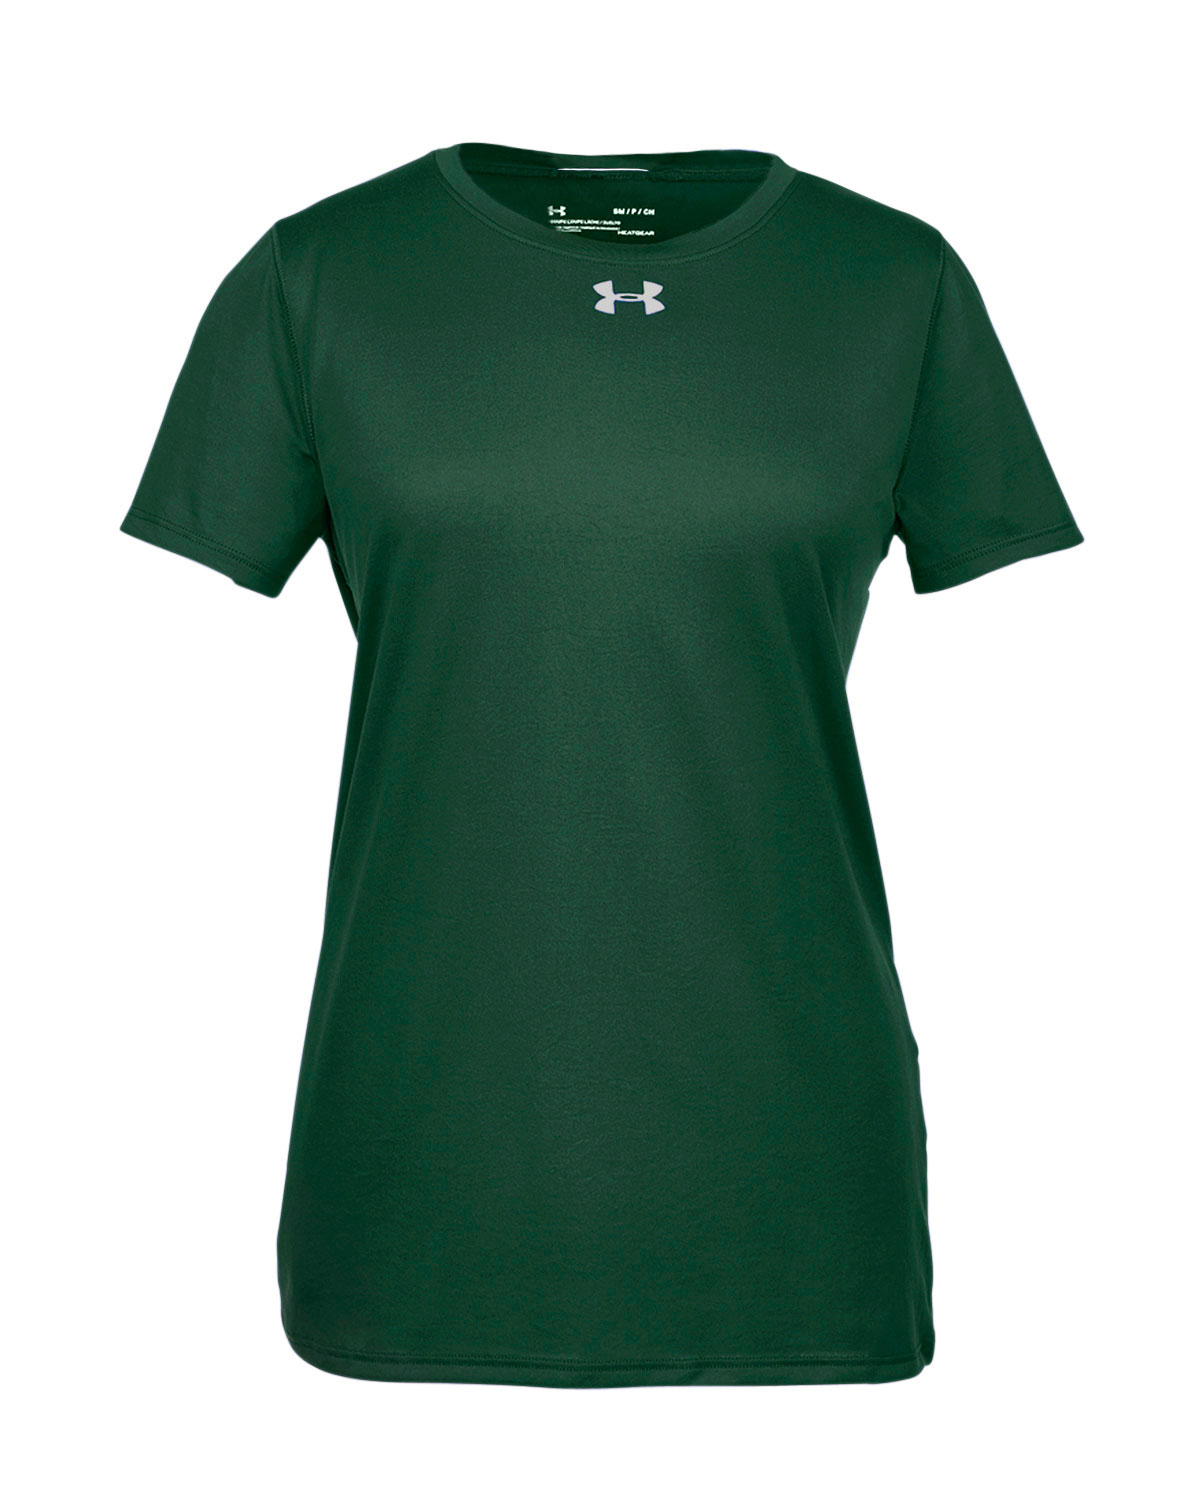 Under Armour Ladies Locker T-Shirt 2.0